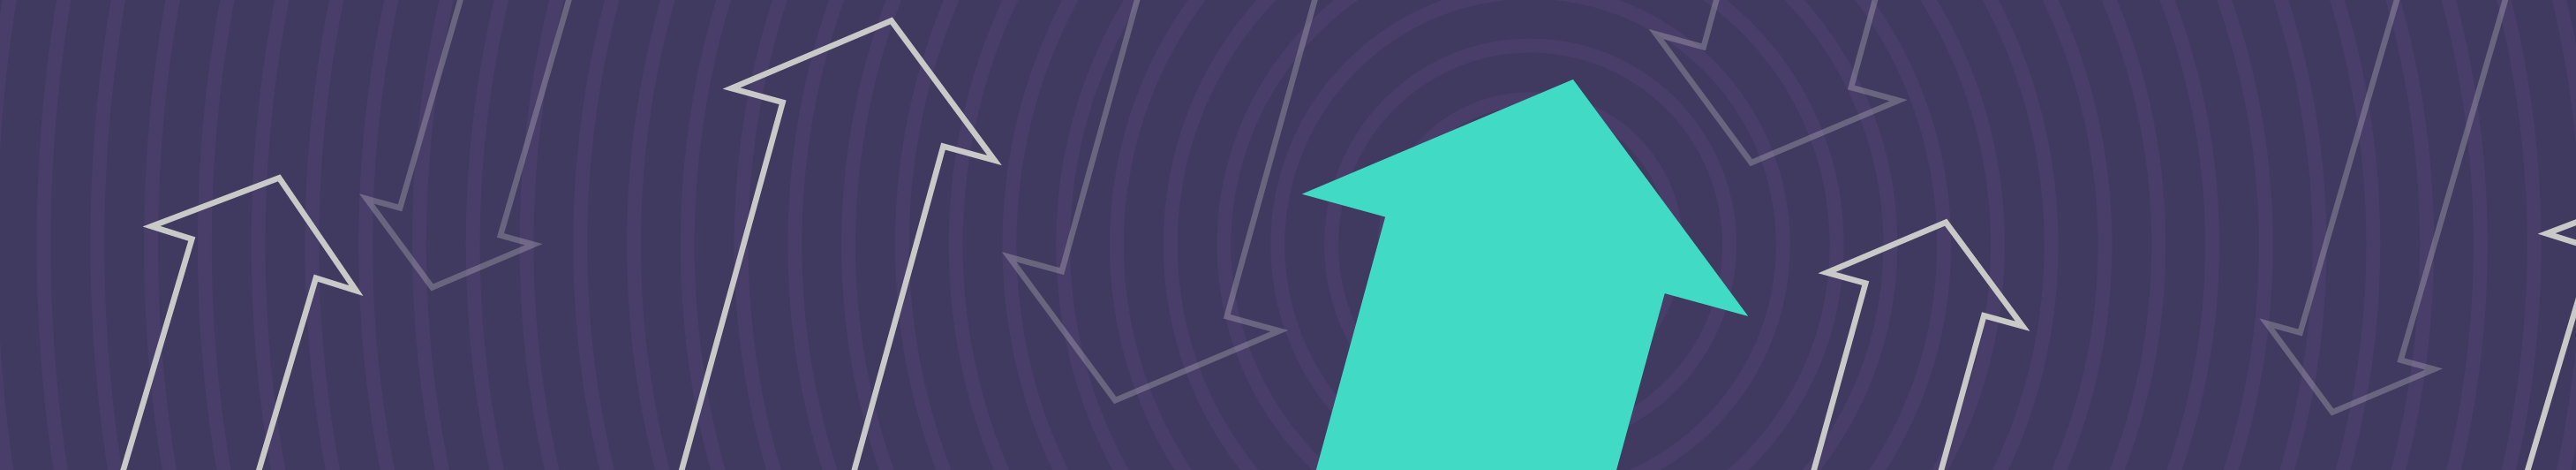 illustration of arrows on a purple background